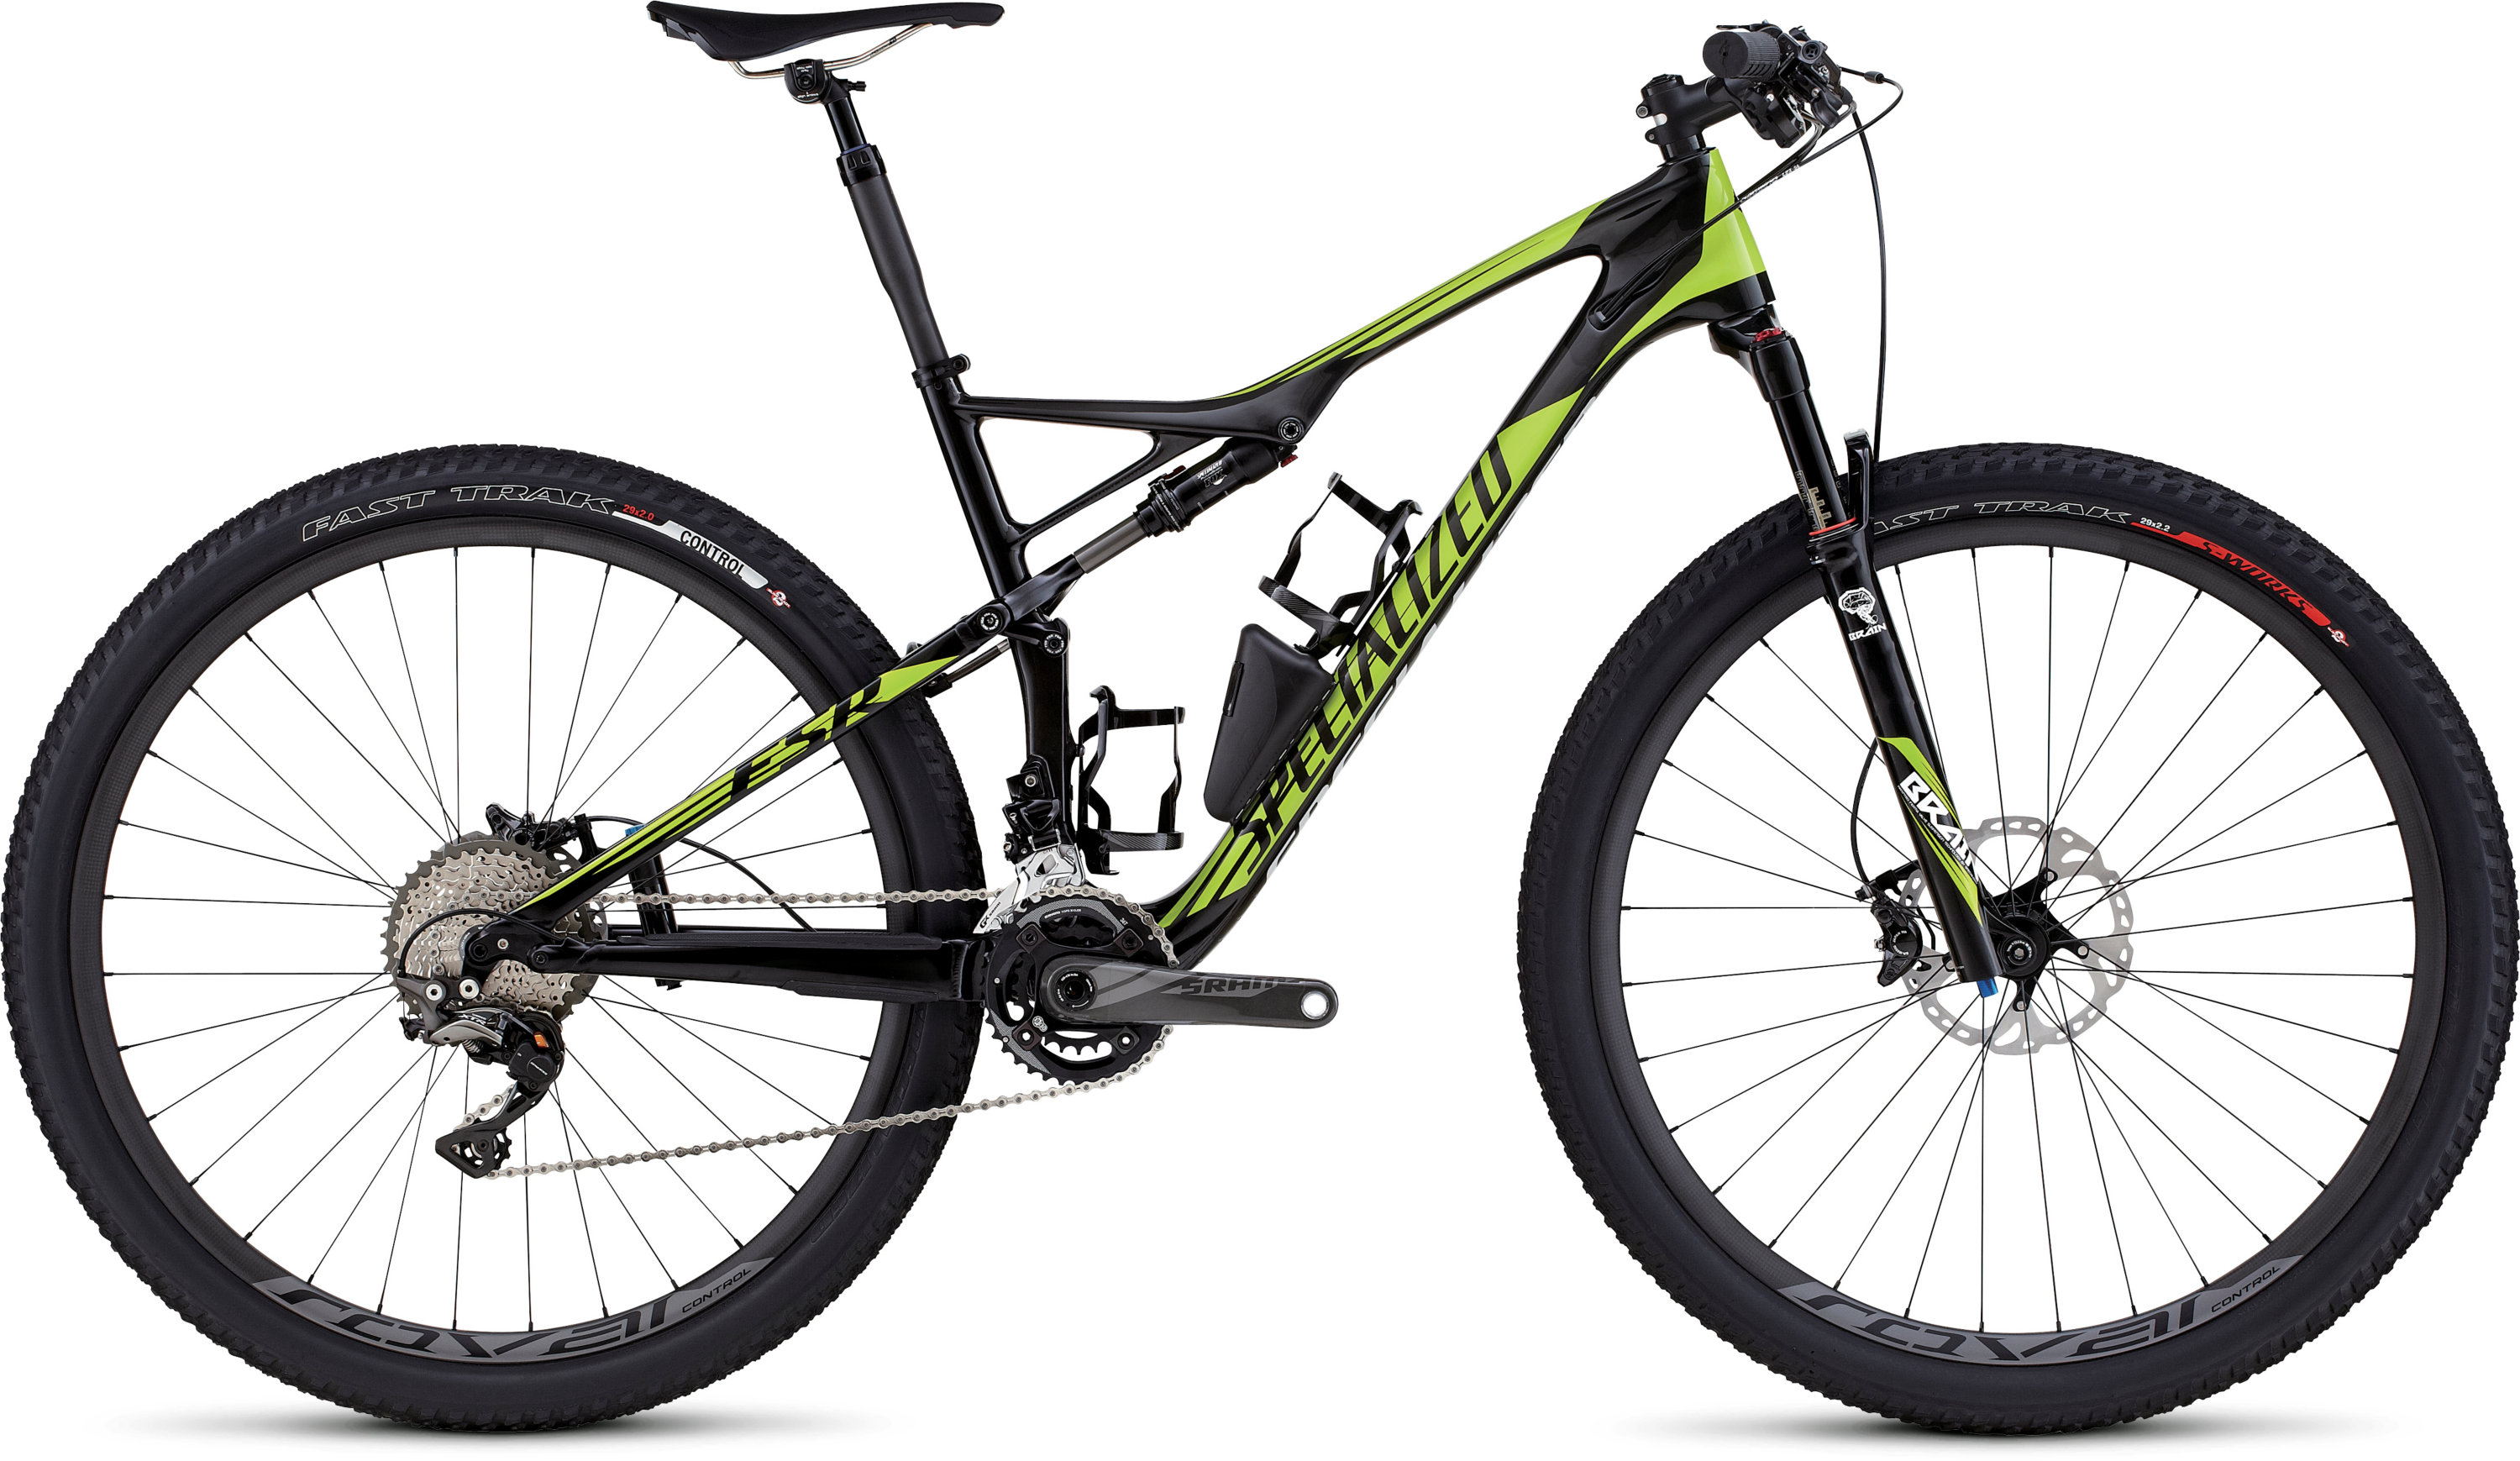 SPECIALIZED EPIC FSR EXPERT CARBON 29 CARB/HYP/WHT XL - SPECIALIZED EPIC FSR EXPERT CARBON 29 CARB/HYP/WHT XL